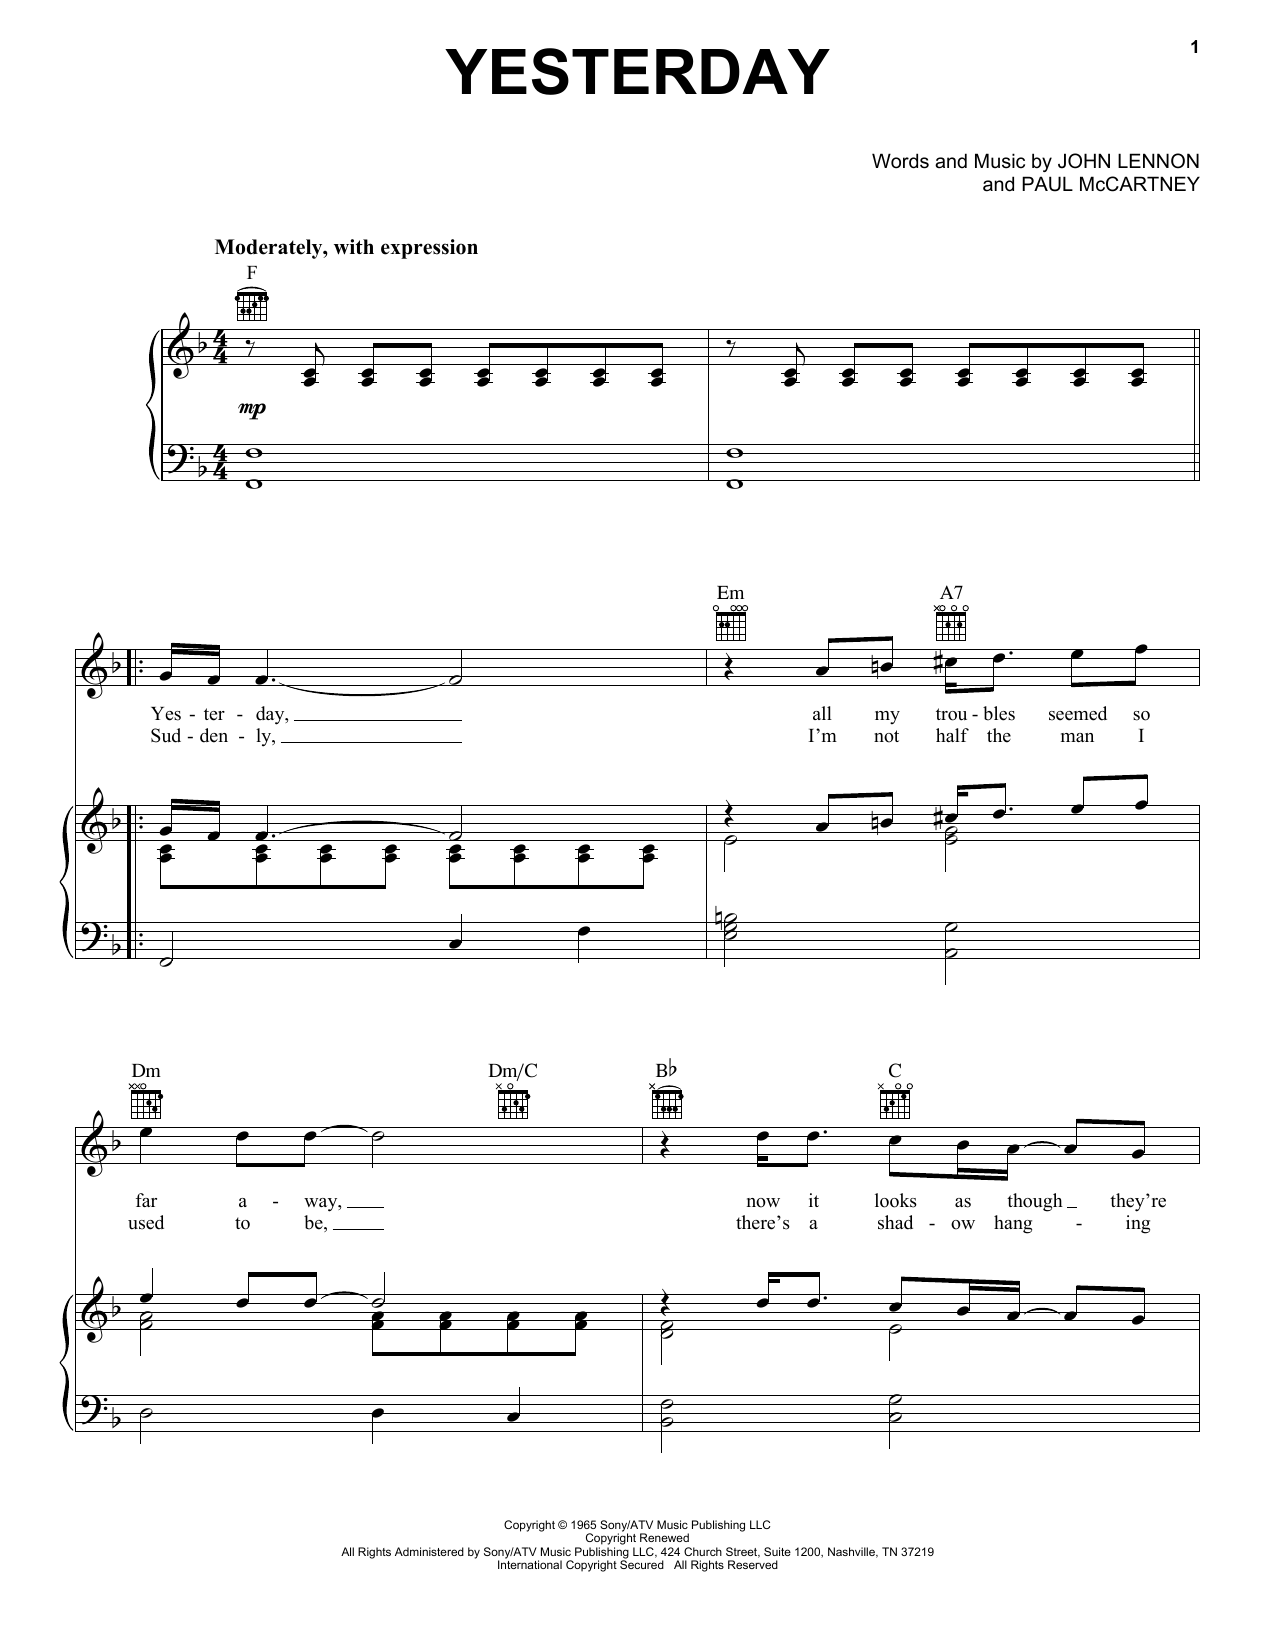 Yesterday sheet music for voice, piano or guitar by Paul McCartney